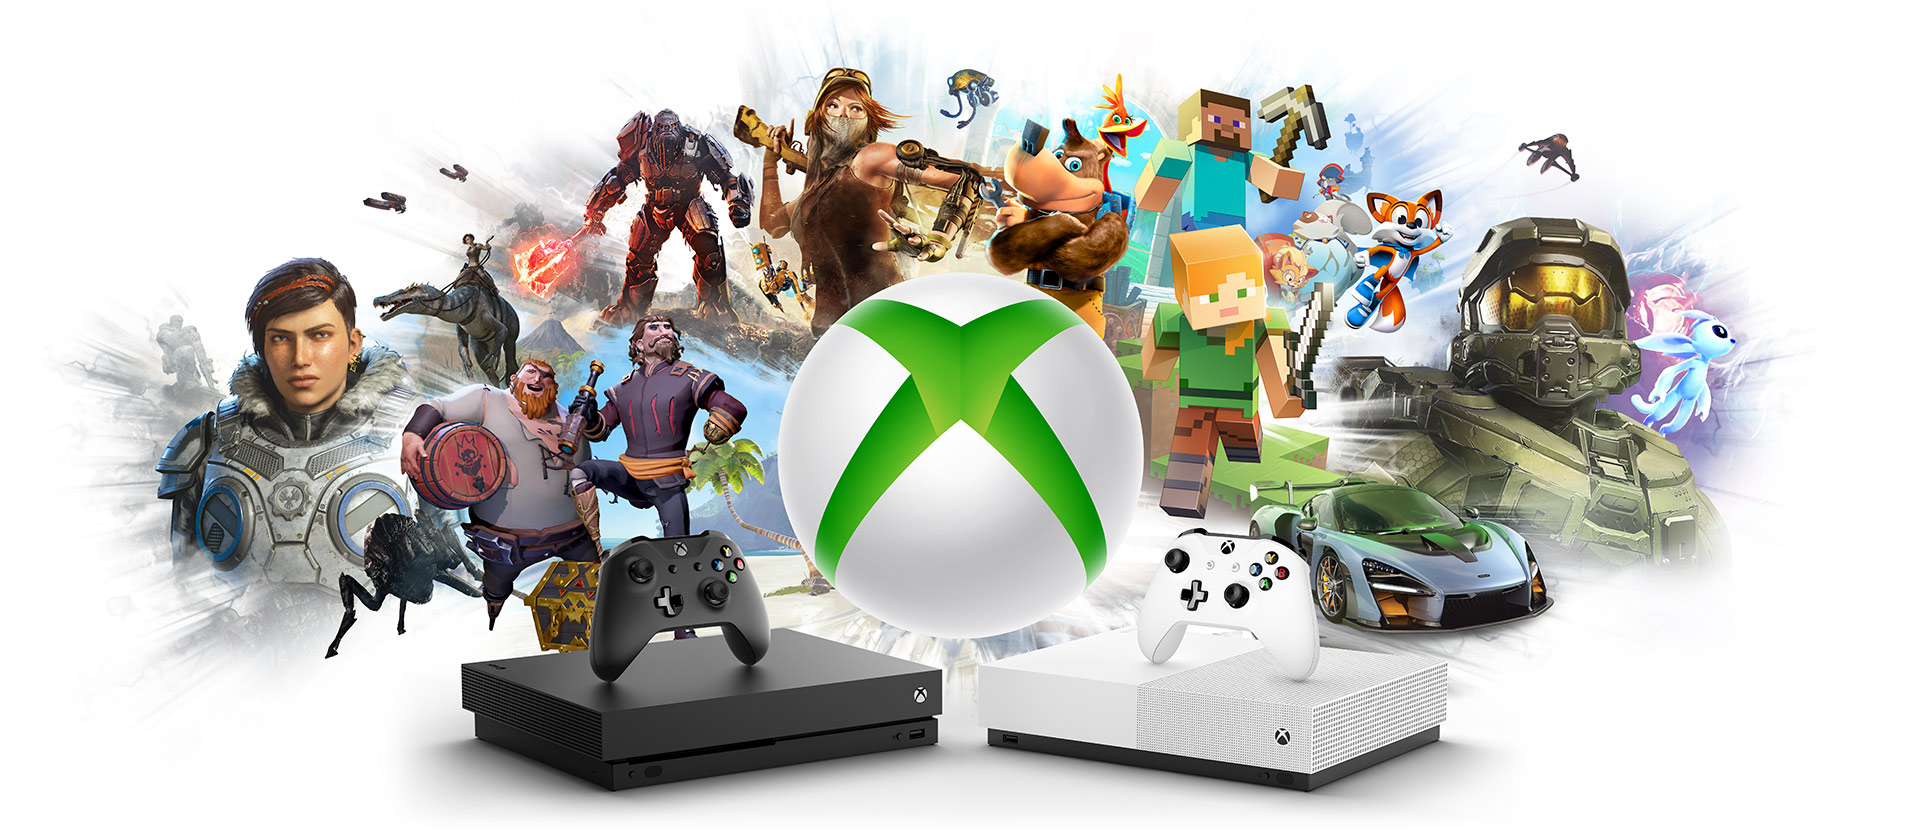 Xbox One X, Xbox One S and Xbox One S All-Digital Edition and game art from Forza, Minecraft, and Star Wars